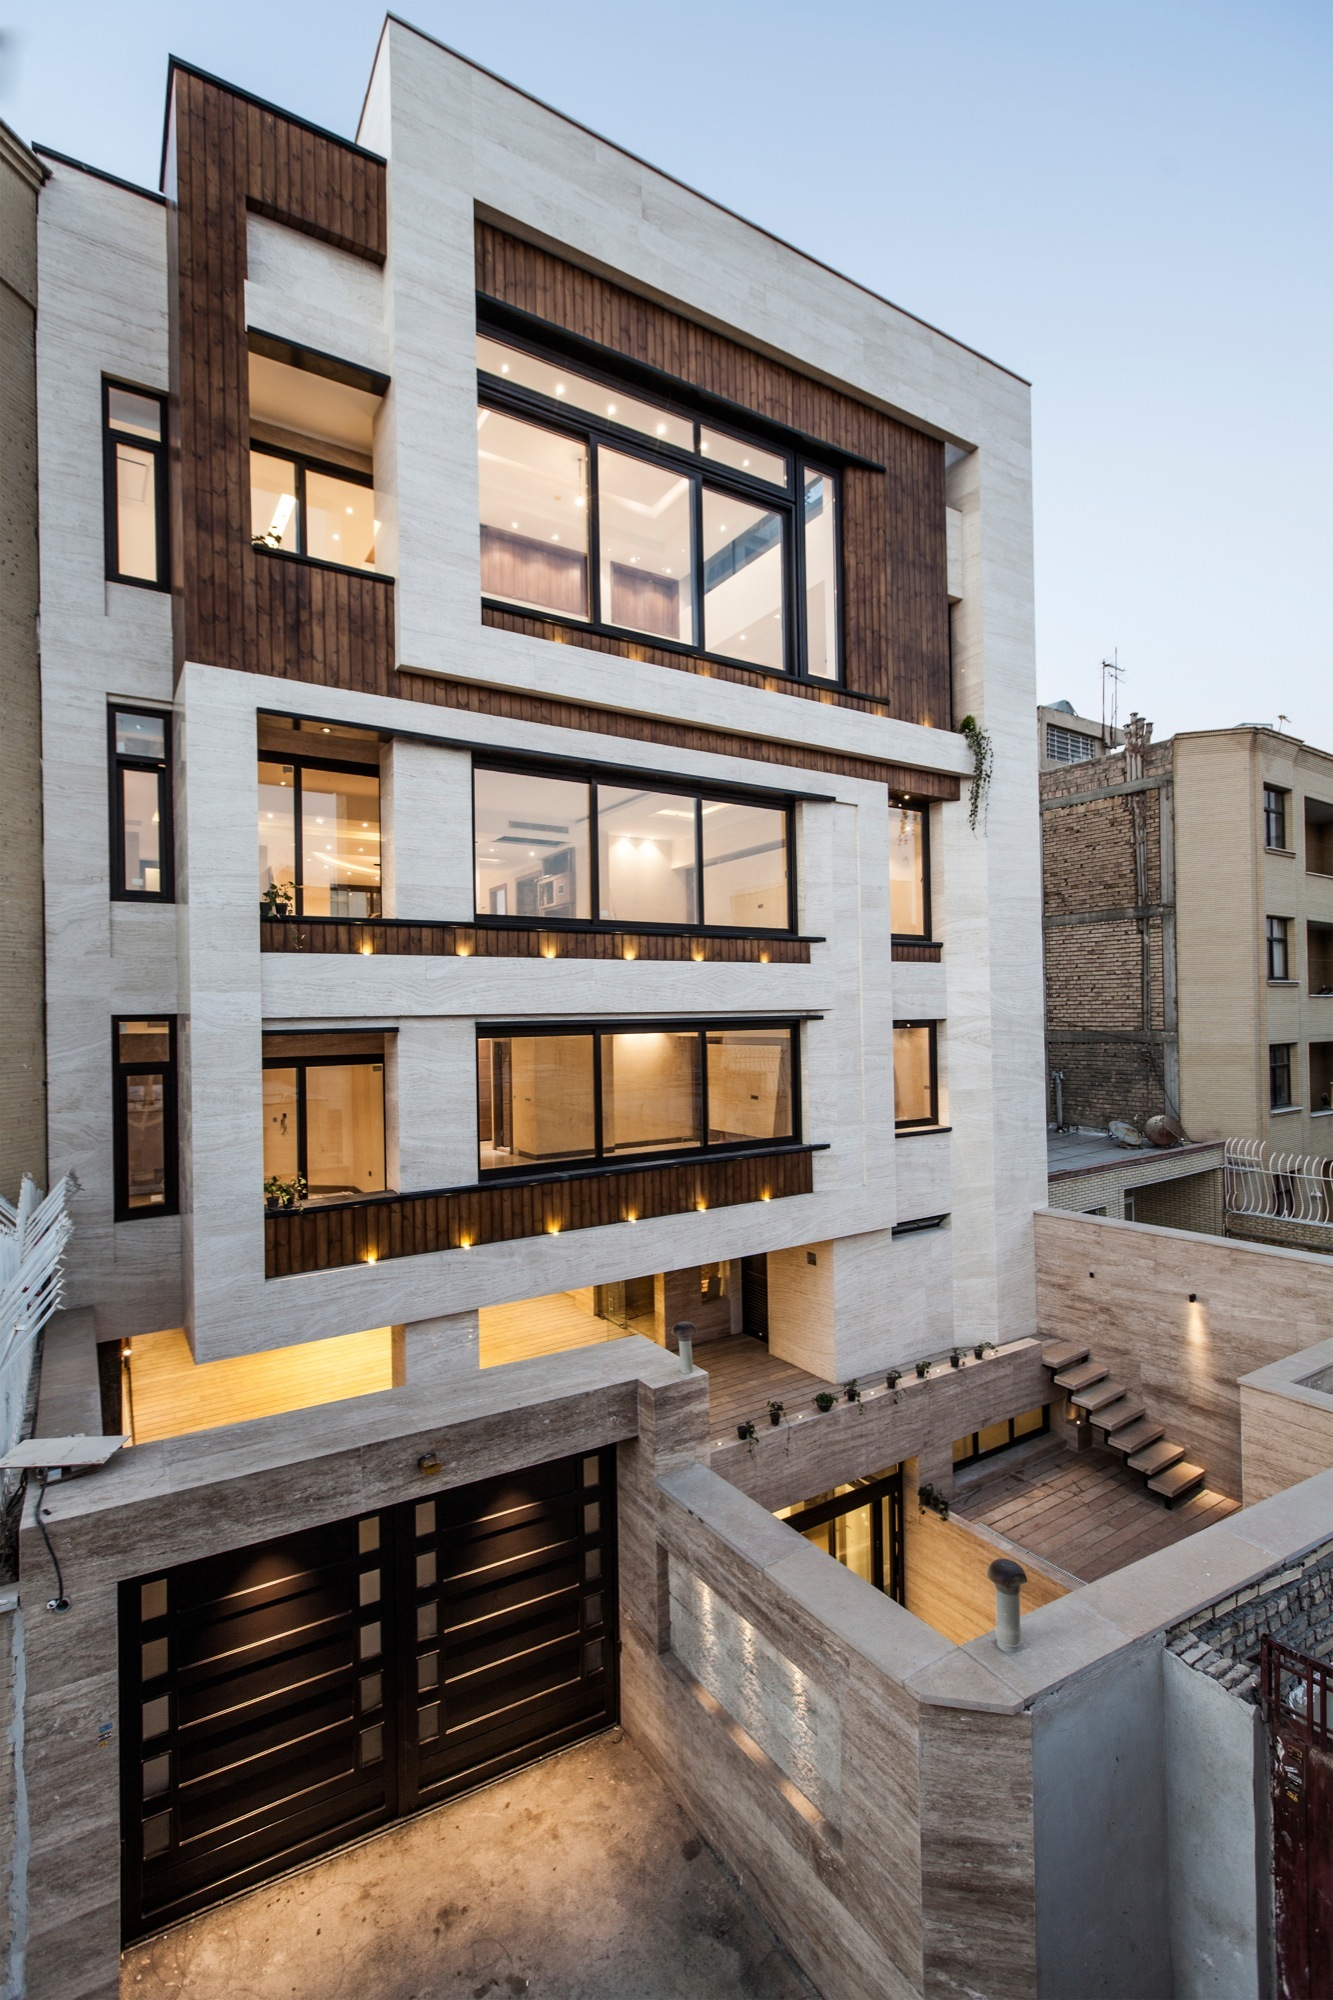 House 2 Sarsayeh Architectural Office Archdaily